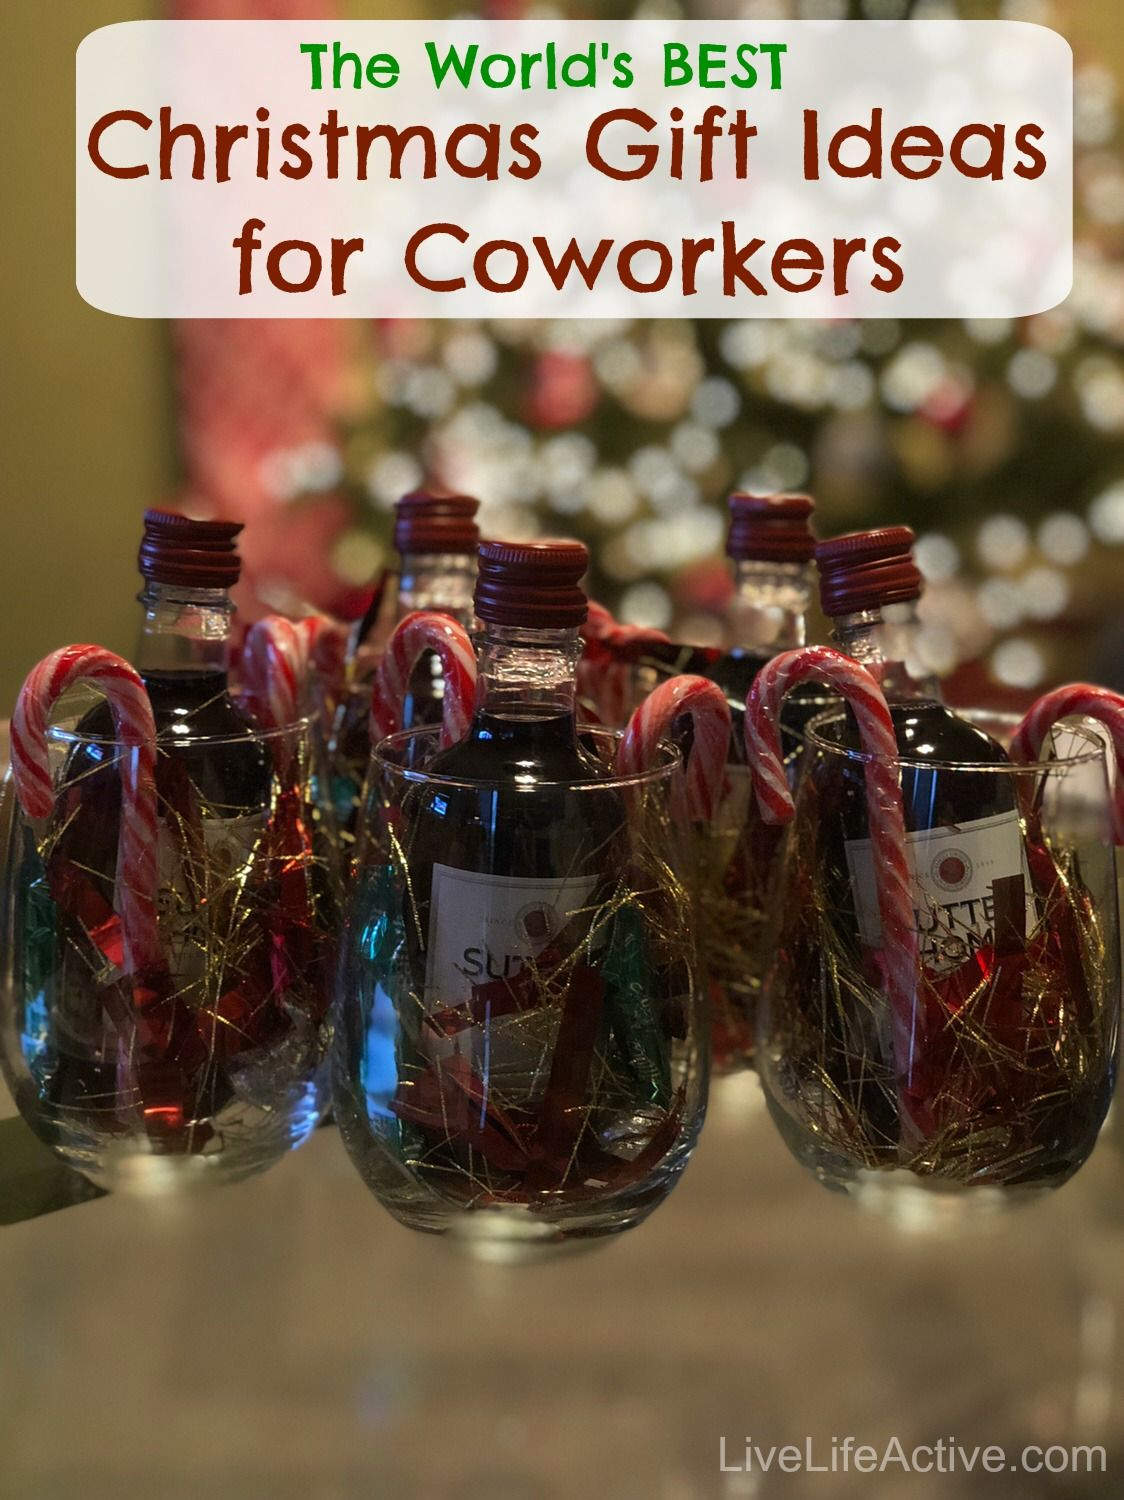 diy christmas gifts | Diy christmas gifts for coworkers ...